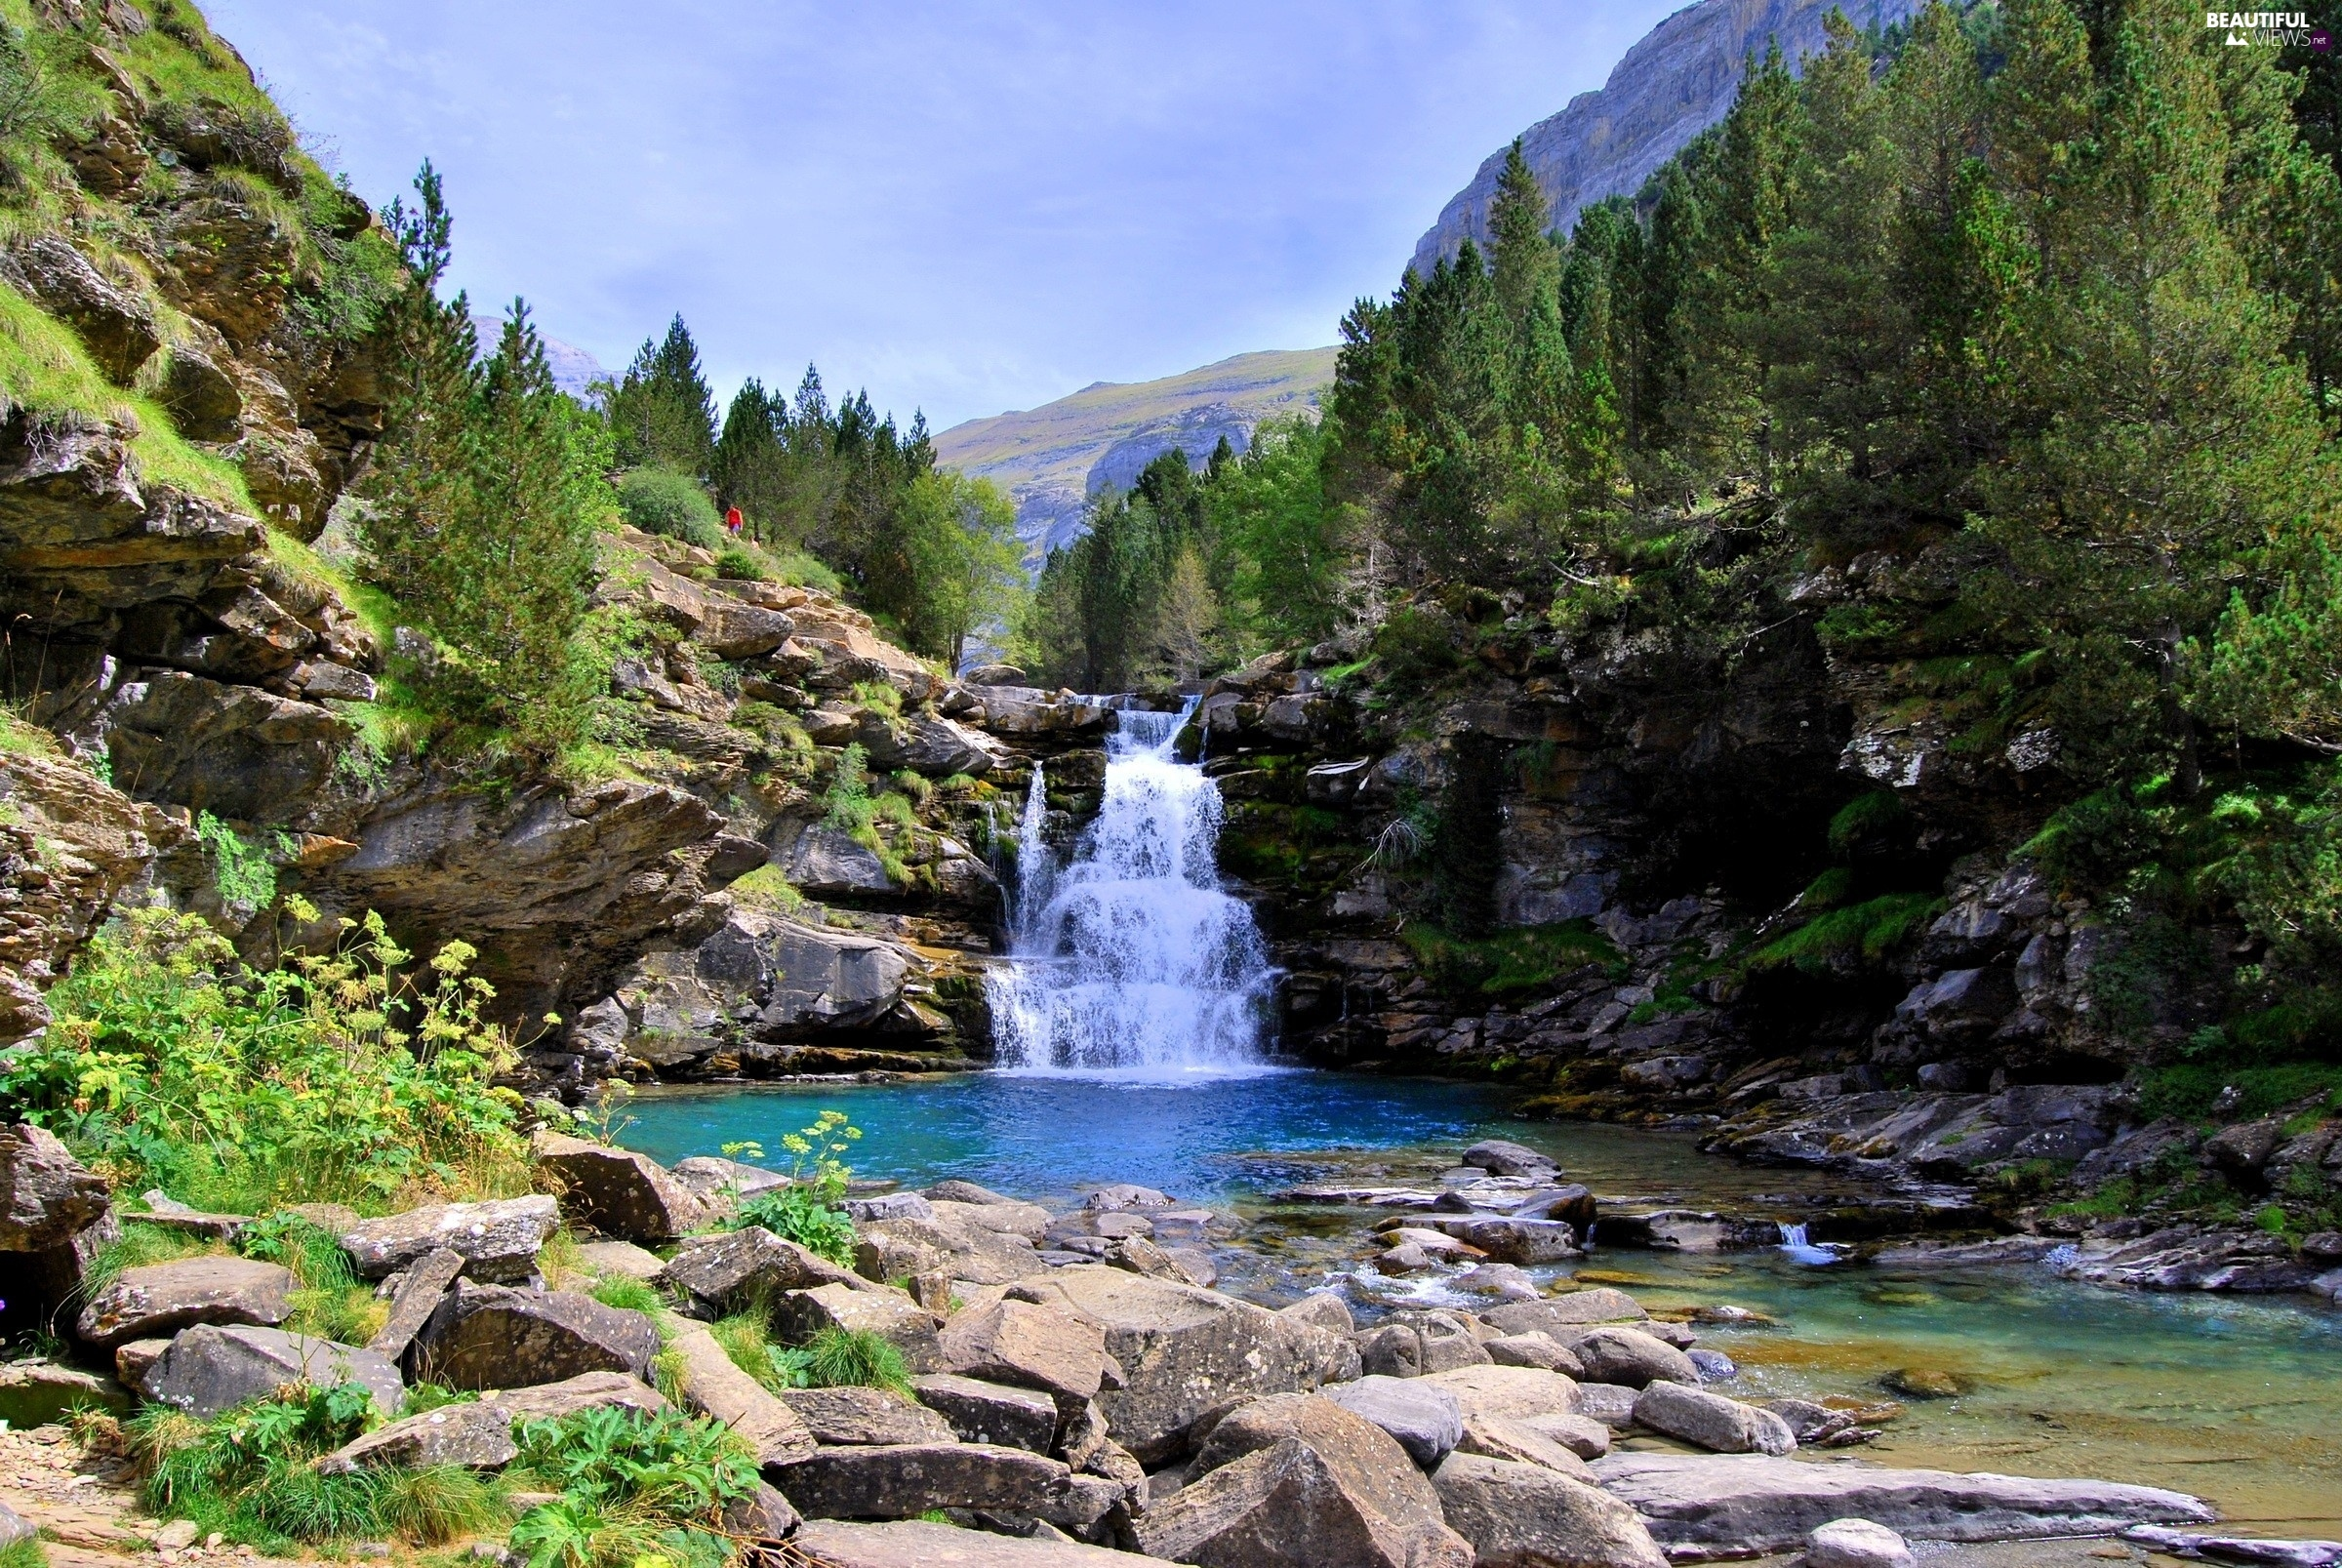 waterfall, rocks, trees, River, Mountains, Stones, viewes